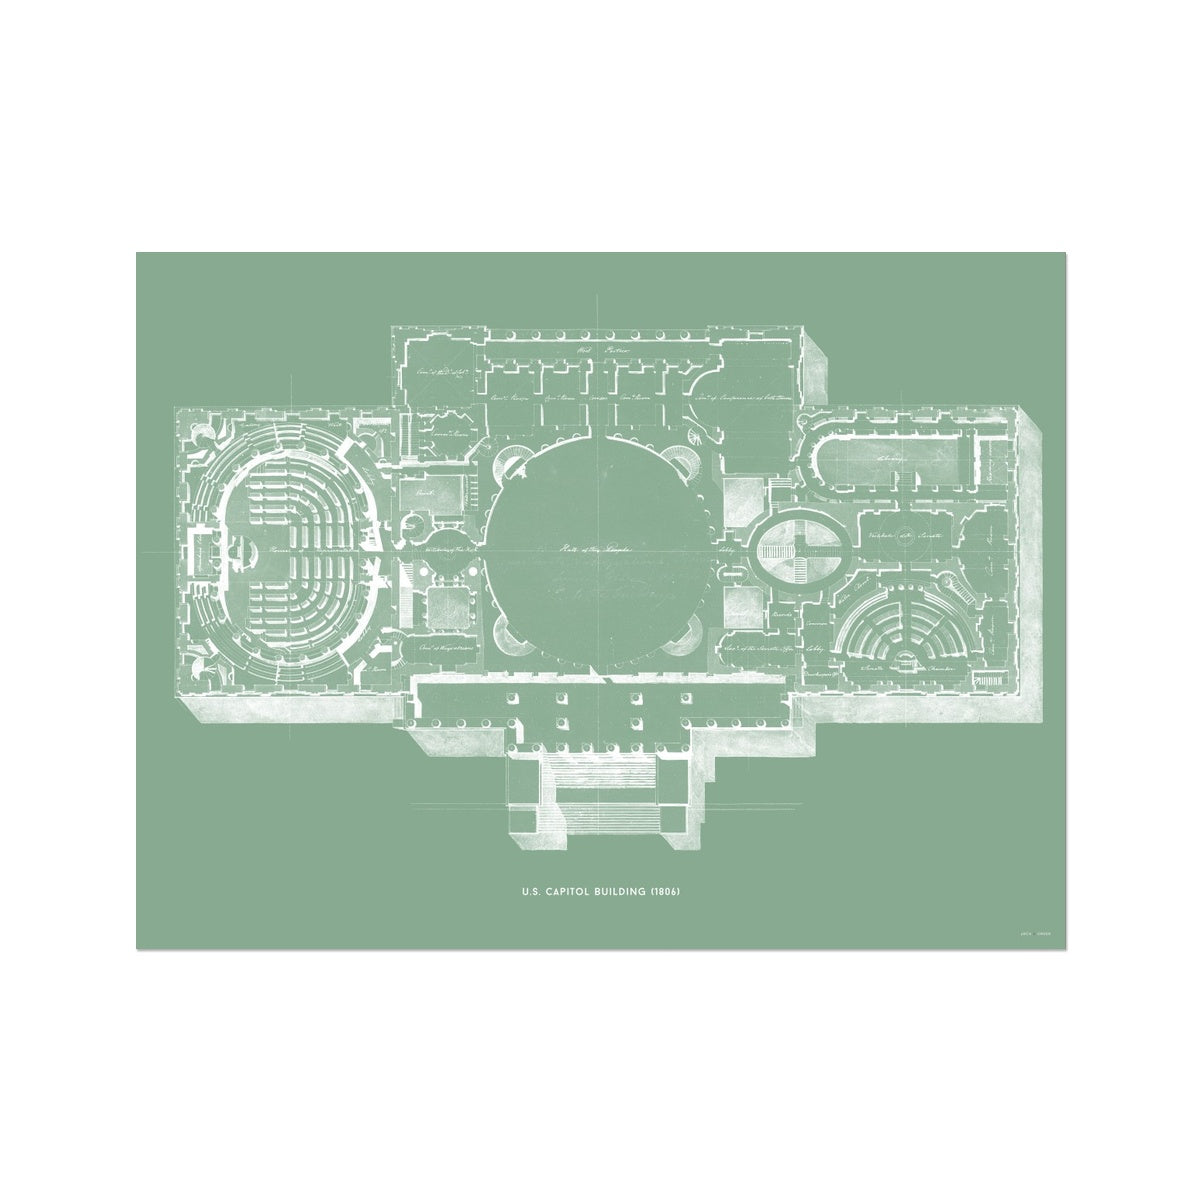 The U.S. Capitol Building - 1806 Floorplan - Green -  Etching Paper Print